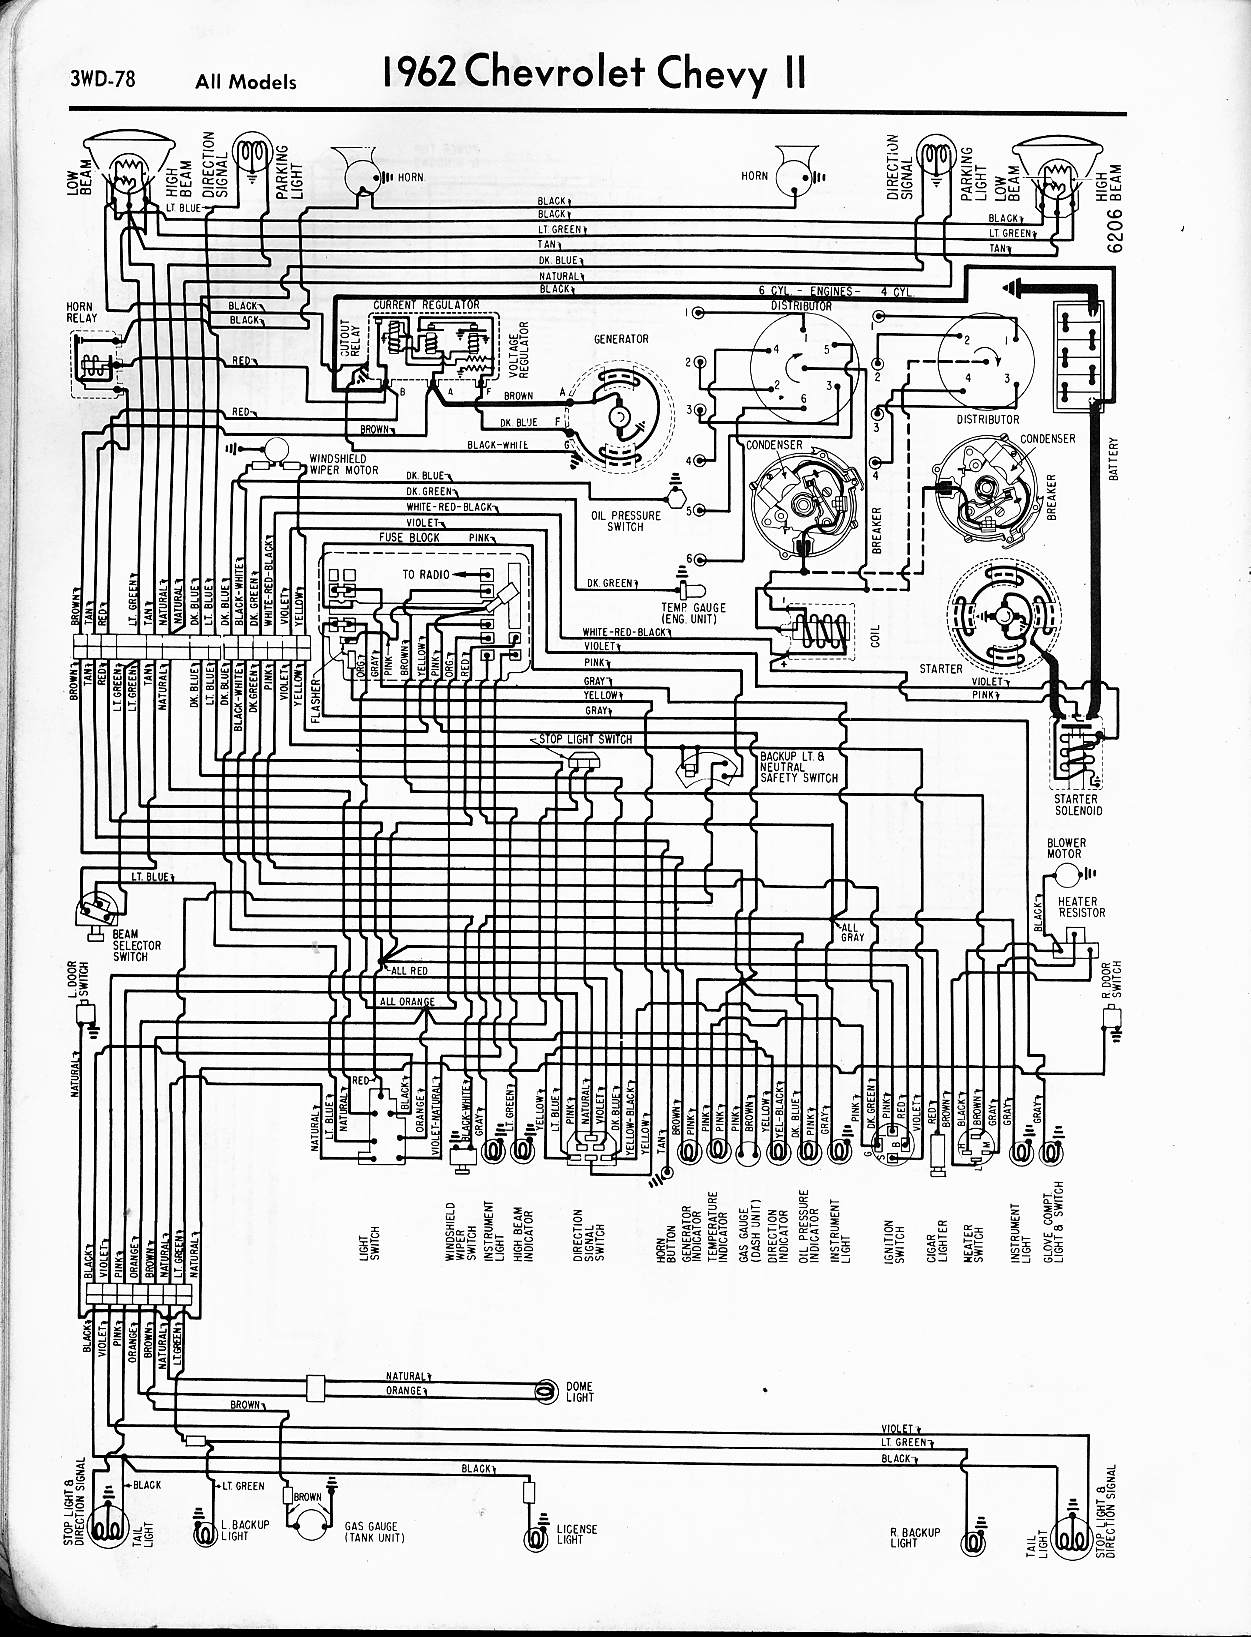 57 65 Chevy Wiring Diagrams 68 Chevy Truck Wiring Diagram 62 Chevy Impala  Wiring Diagram